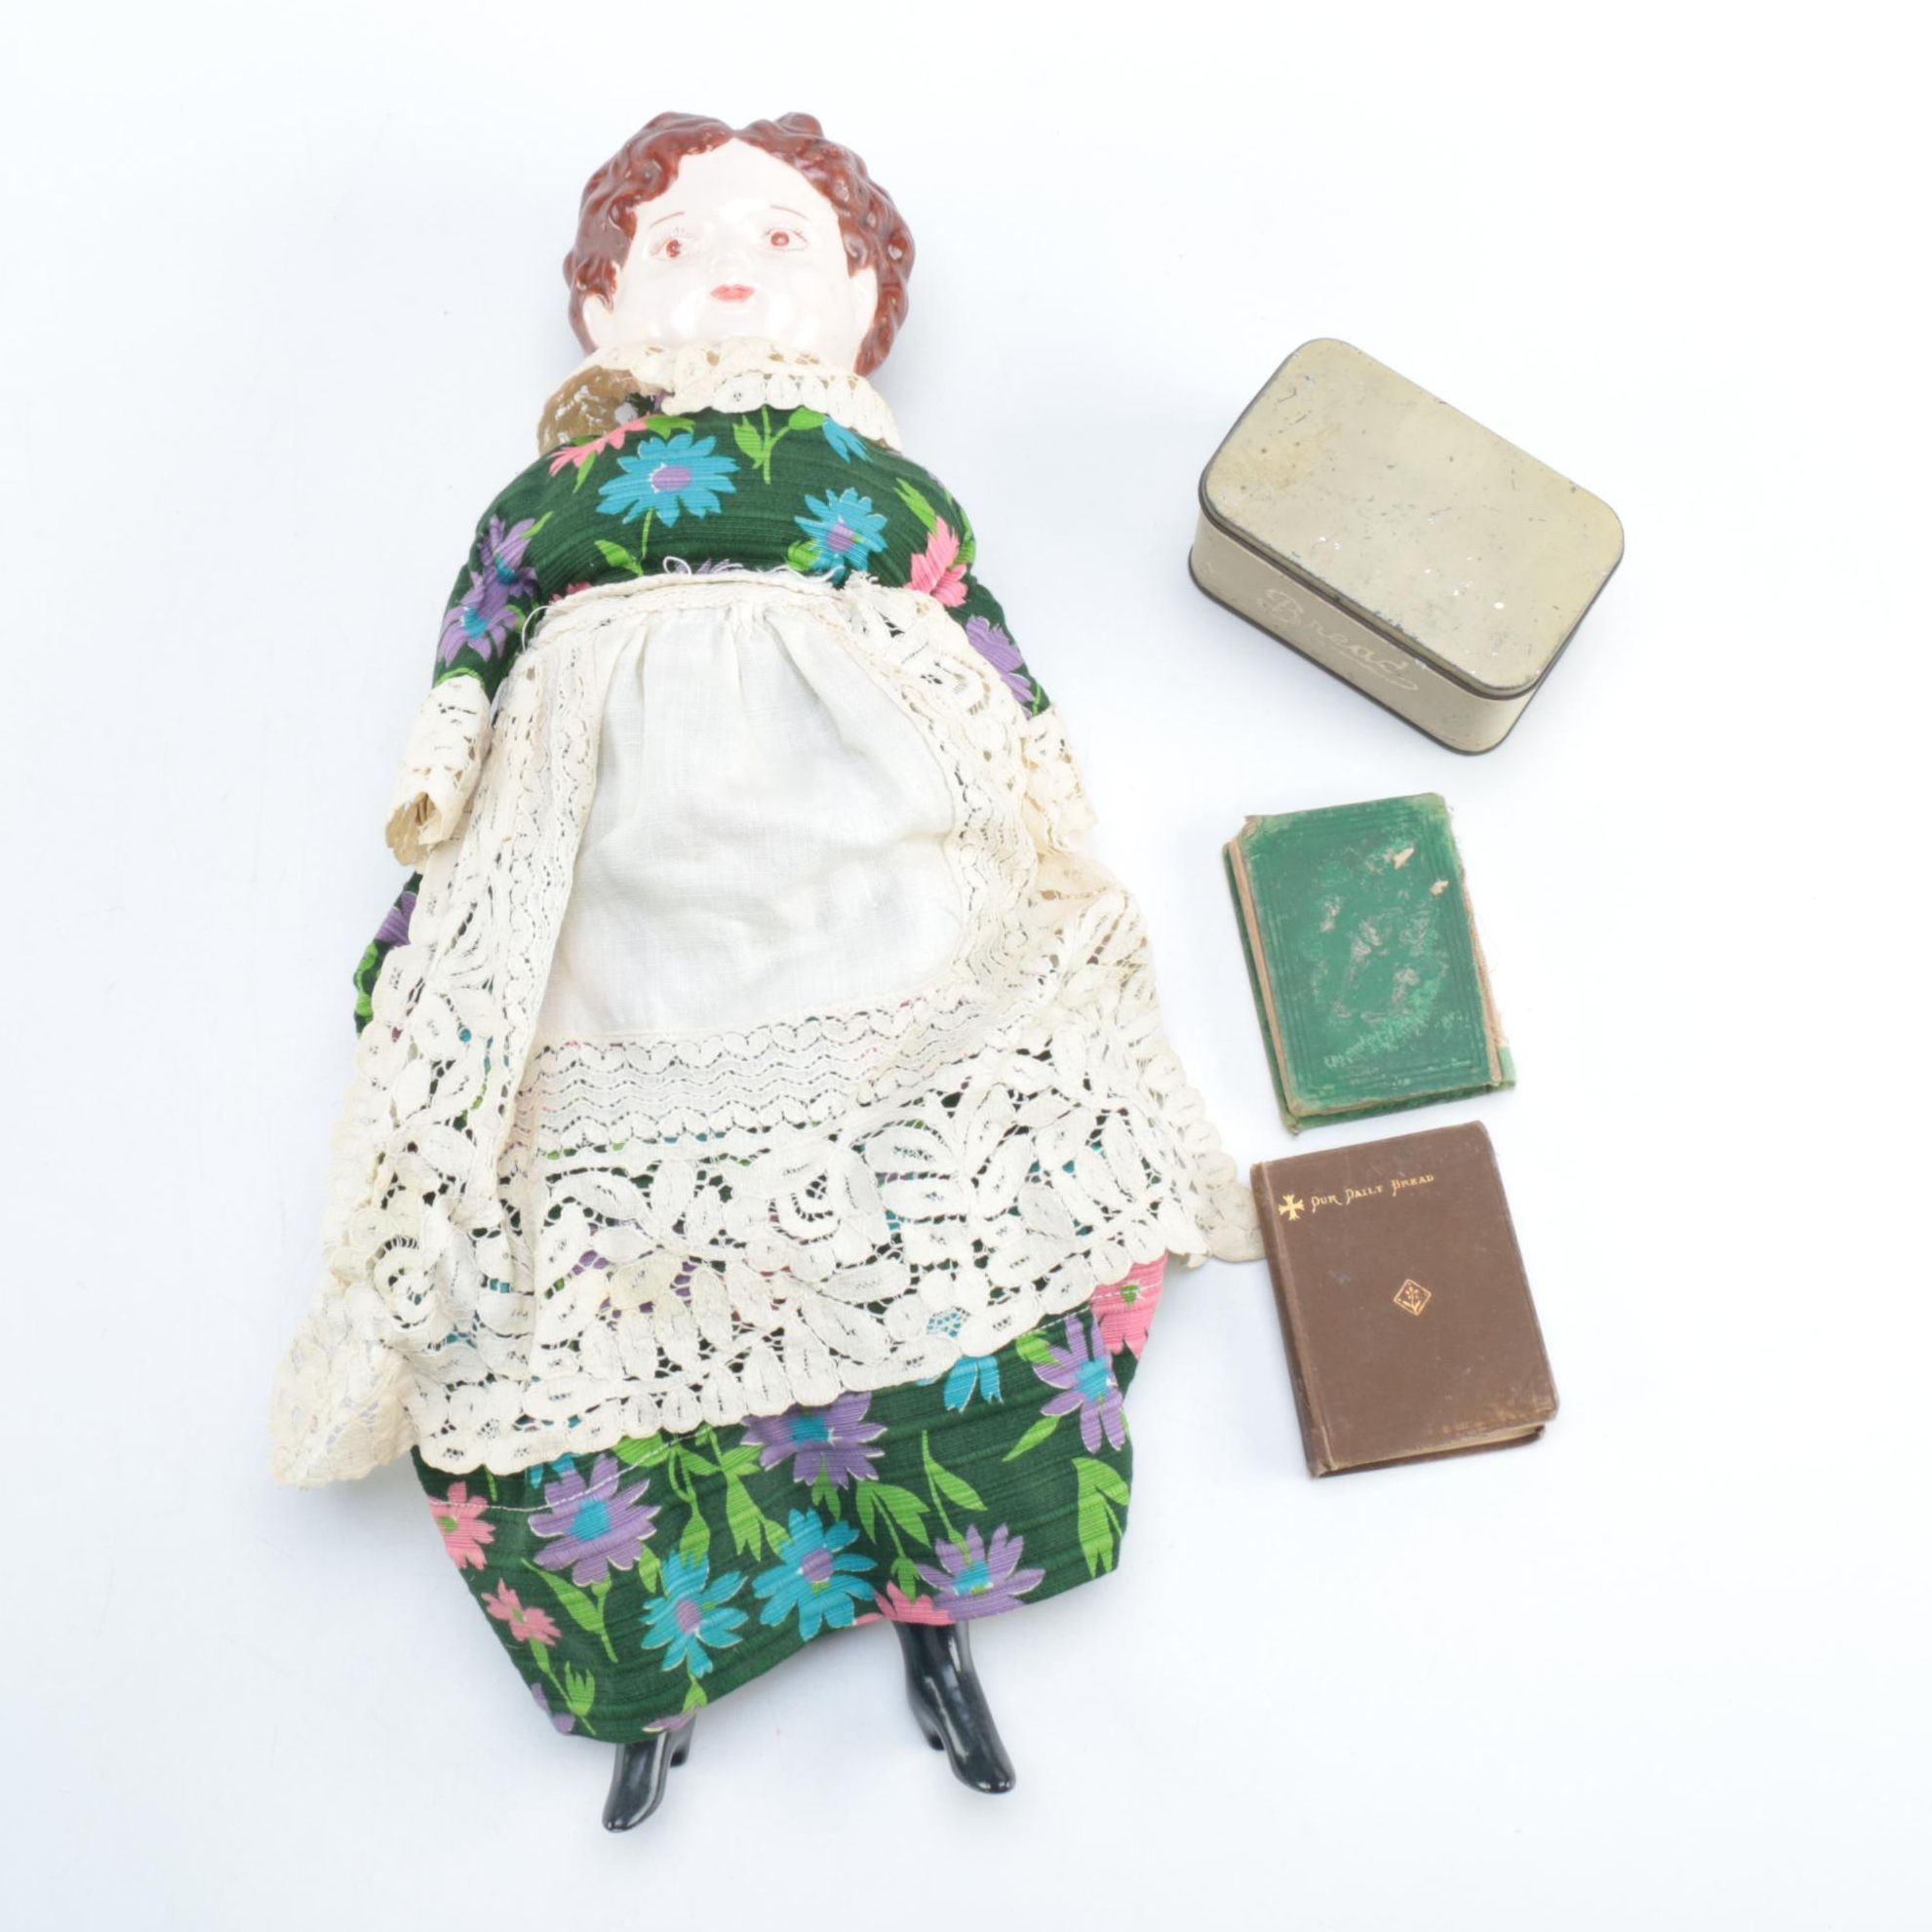 Porcelain Doll with Religious Books and Tin Container